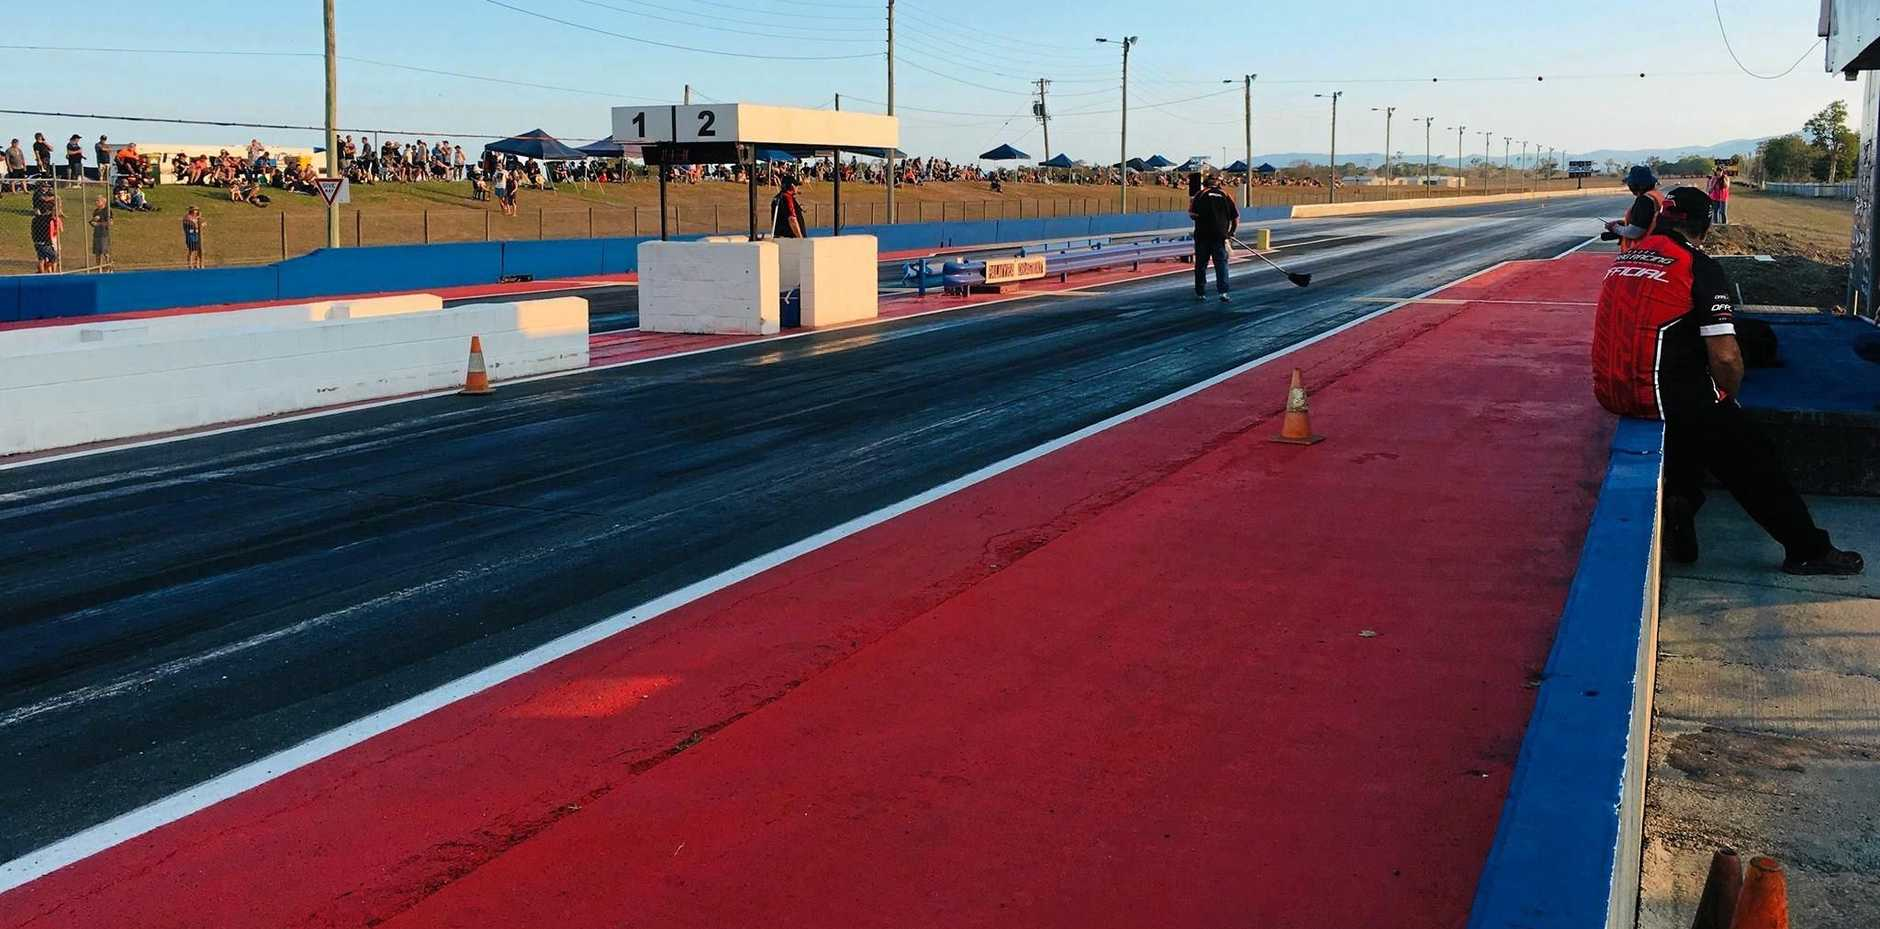 RE-OPENED: The newly refurbished Palmyra drag strip had its official reopening at the weekend.